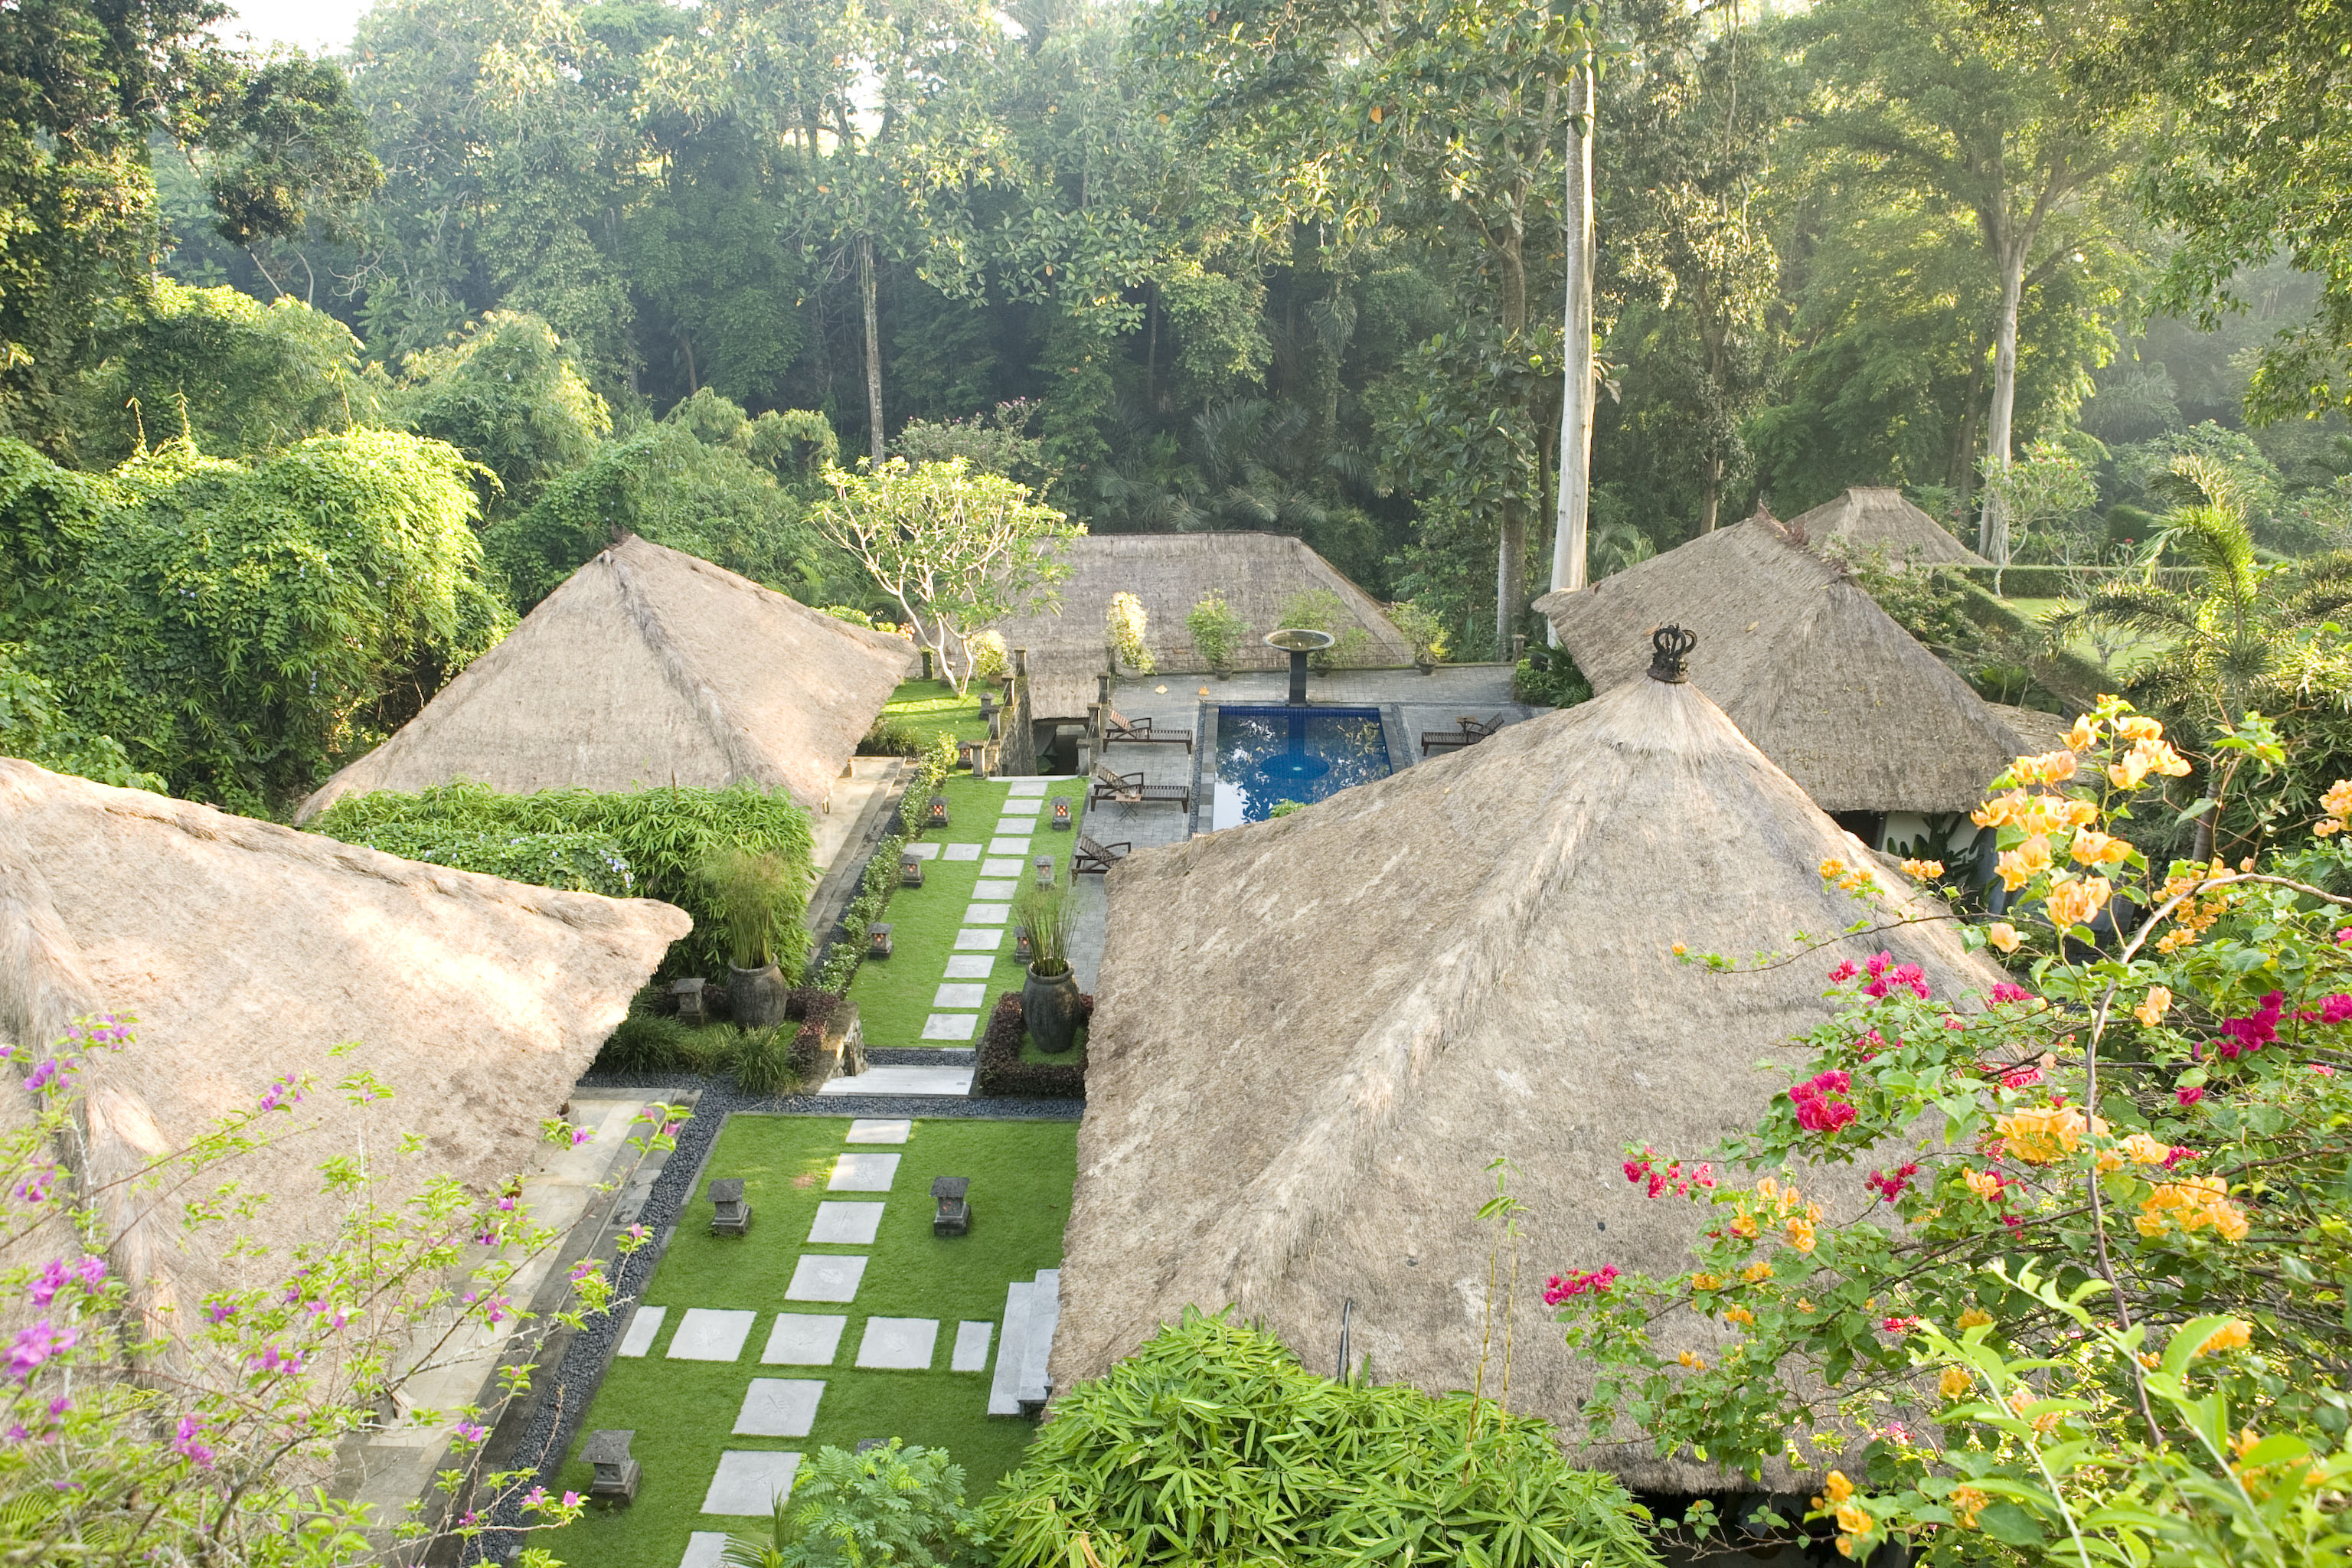 Sukhavati Ayurvedic Retreat and Spa